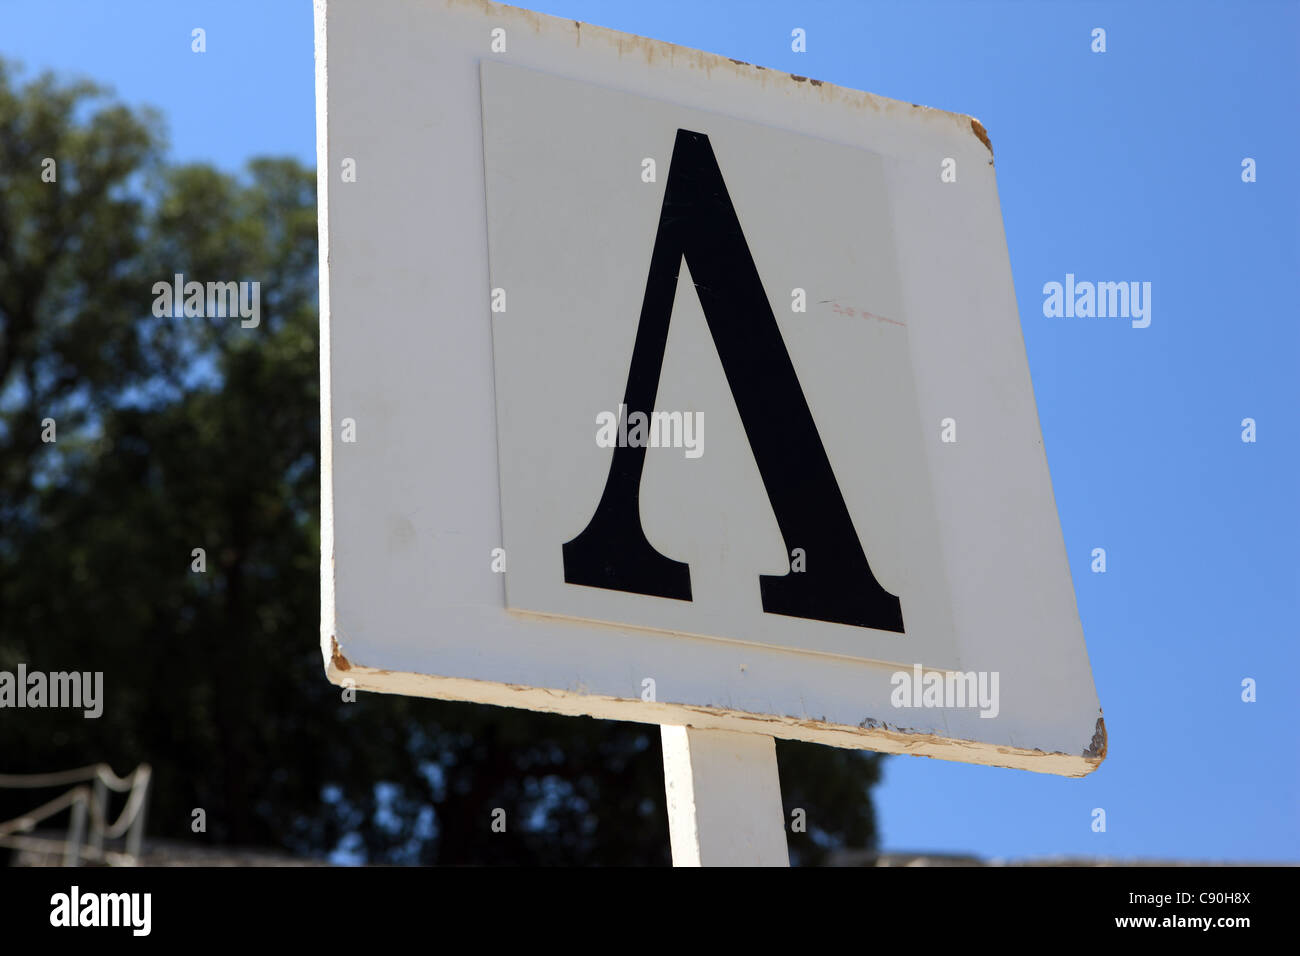 Greek alphabet letter Lambda which is the equivalent of L in European script - Stock Image